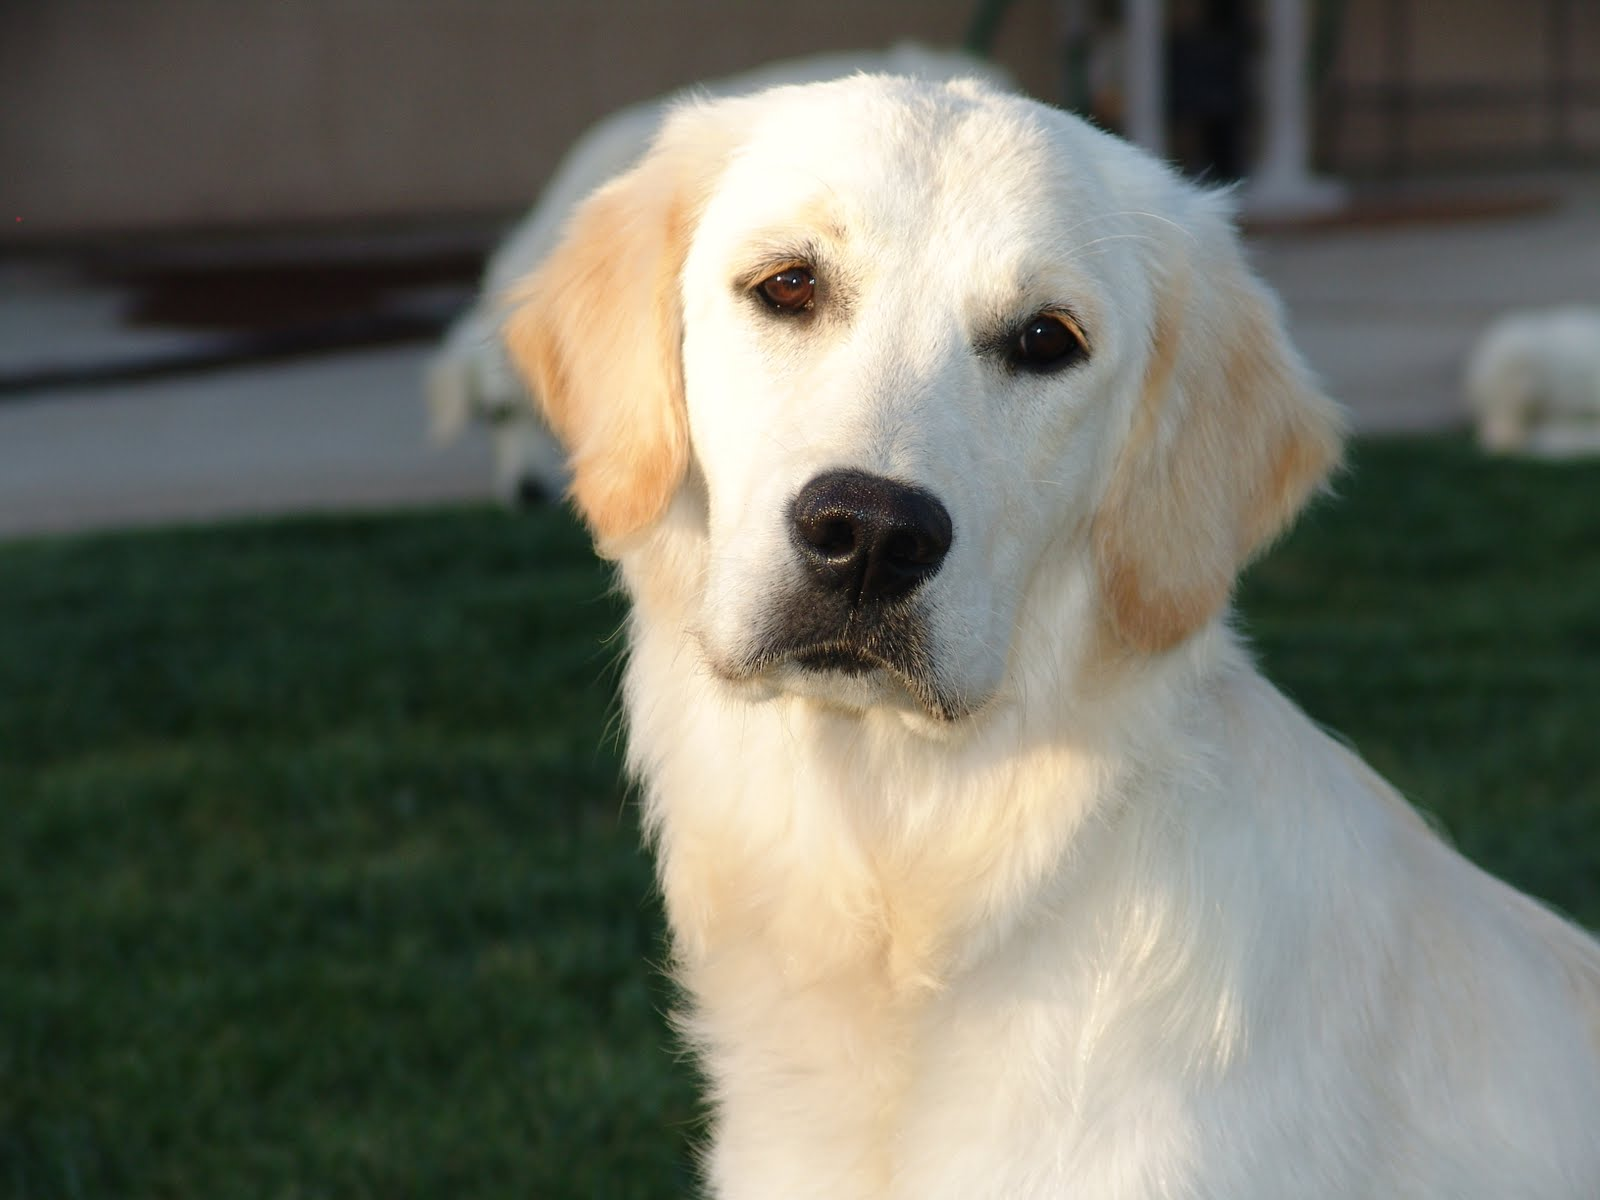 All About Golden Retrievers!: March 2013